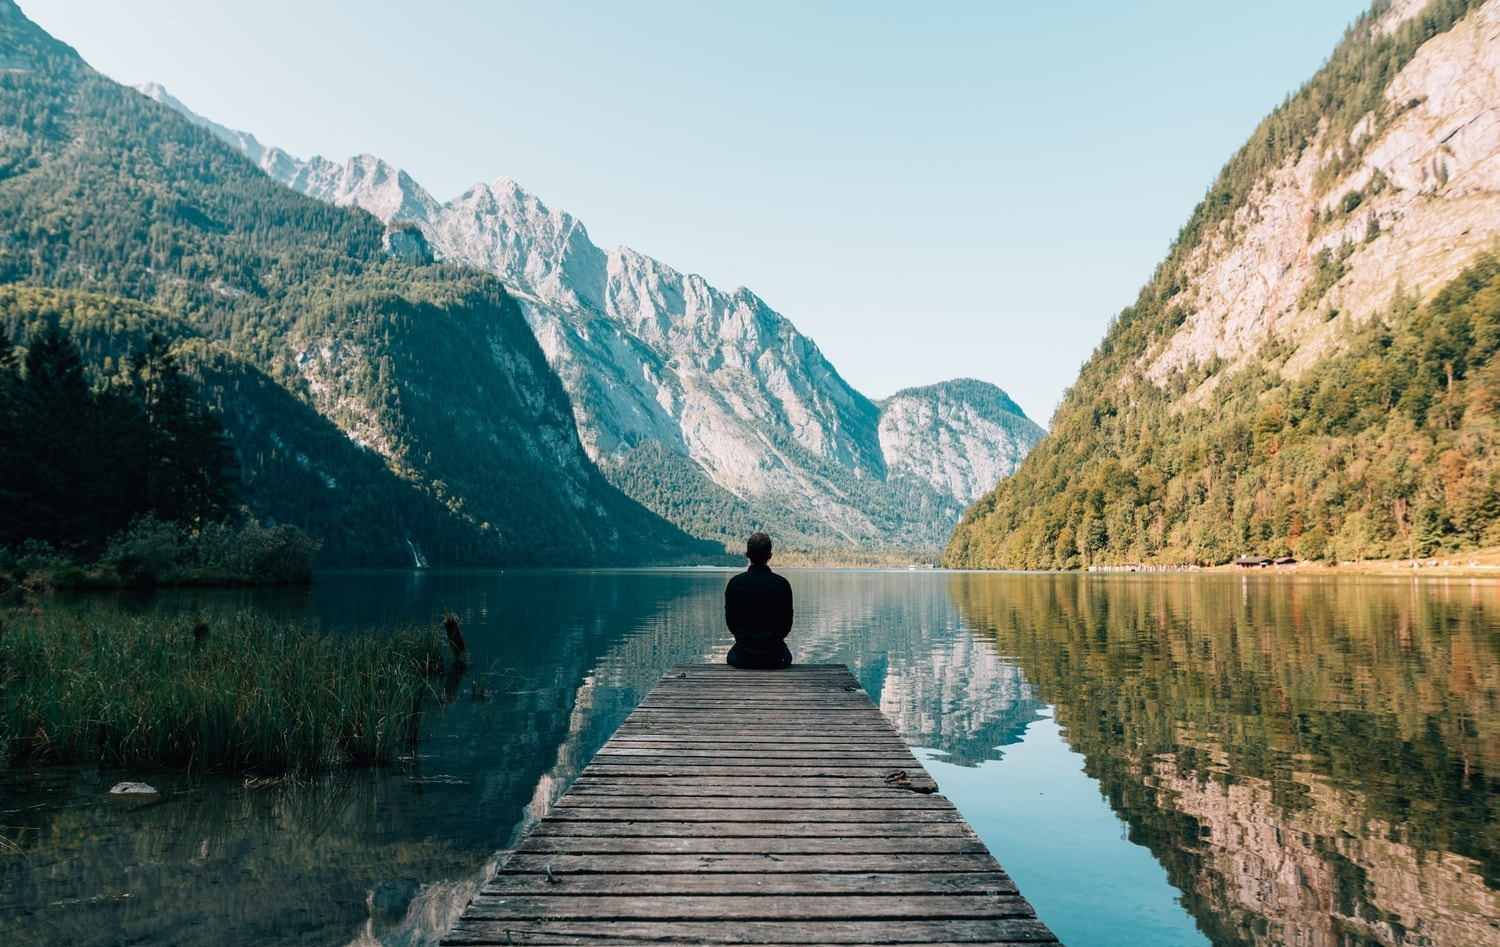 self-reflection in nature